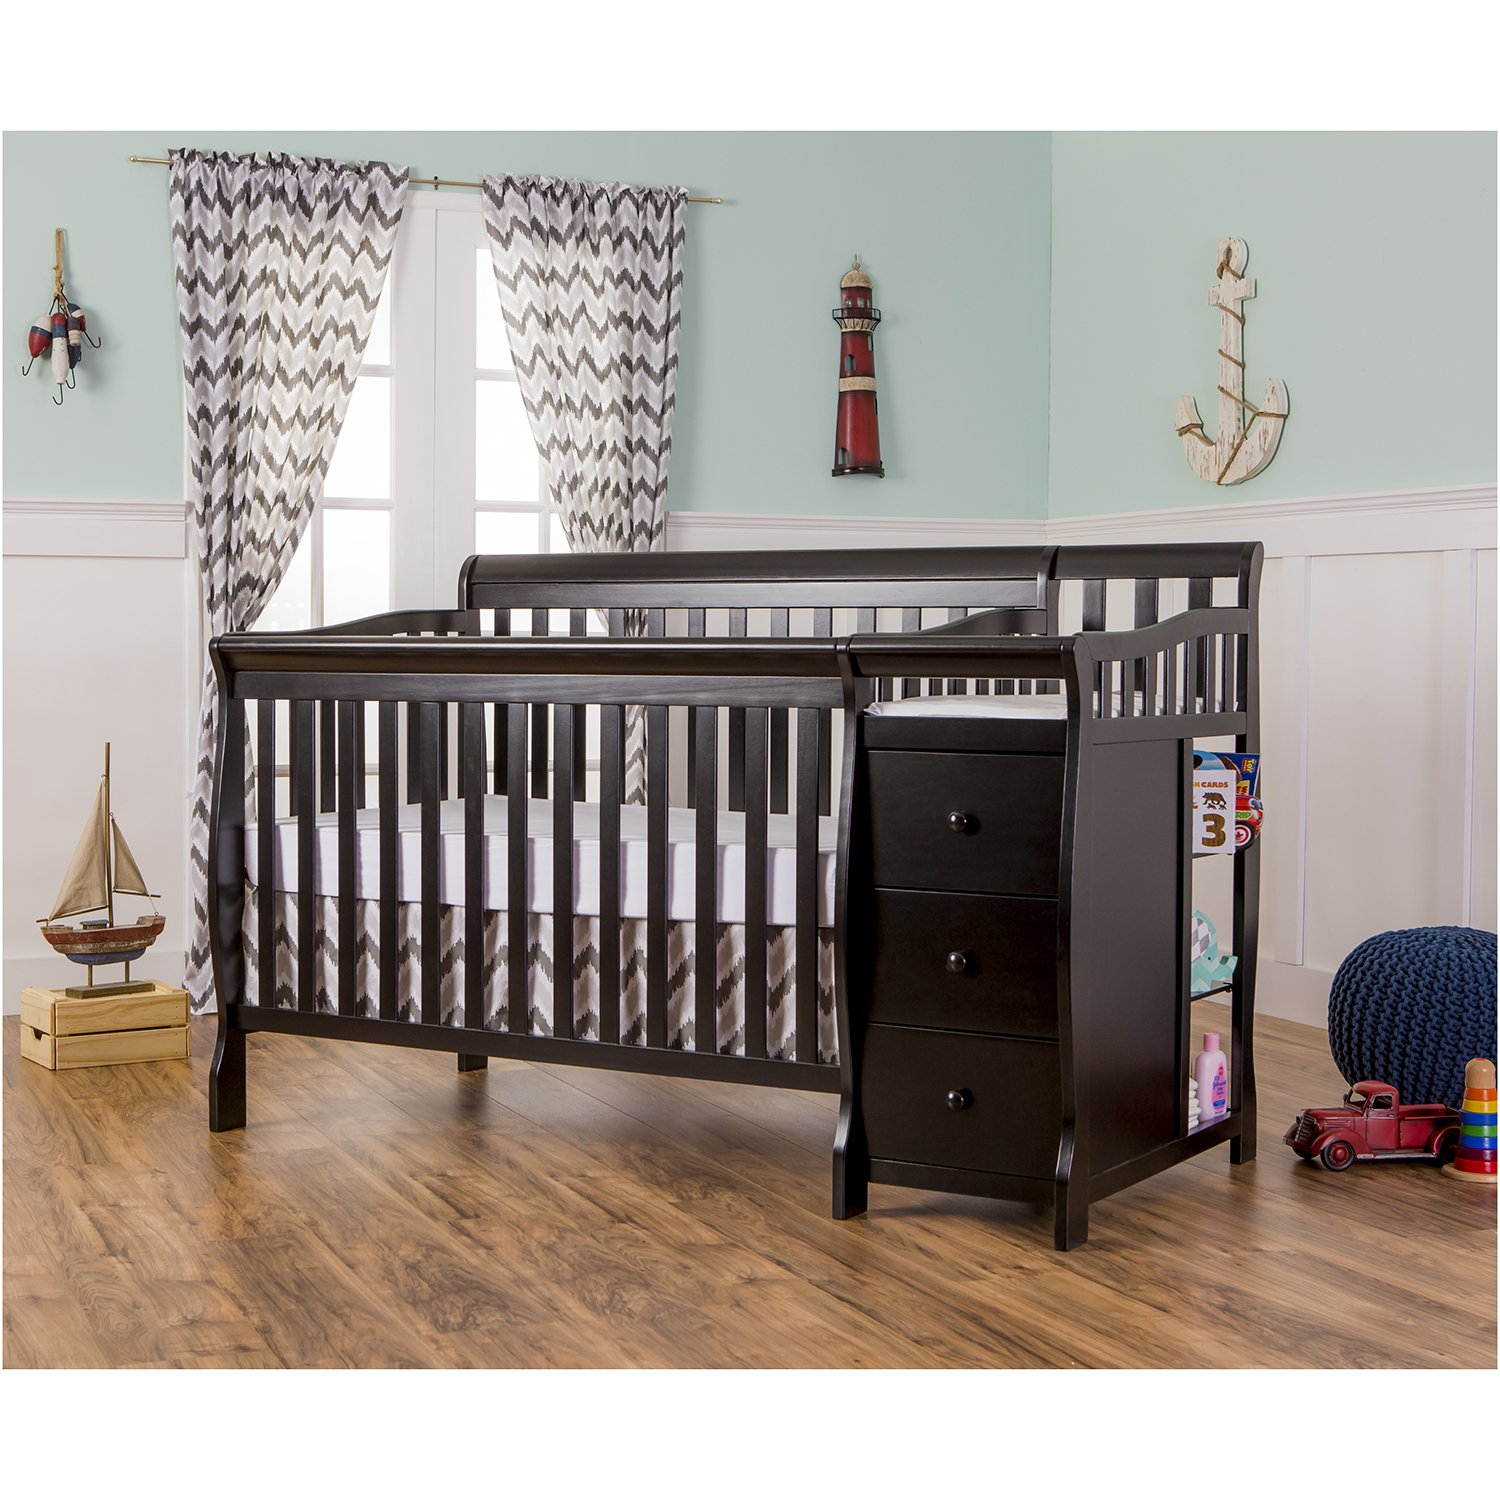 Amazon.com : Dream On Me 5 In 1 Brody Convertible Crib With Changer, Black  : Baby